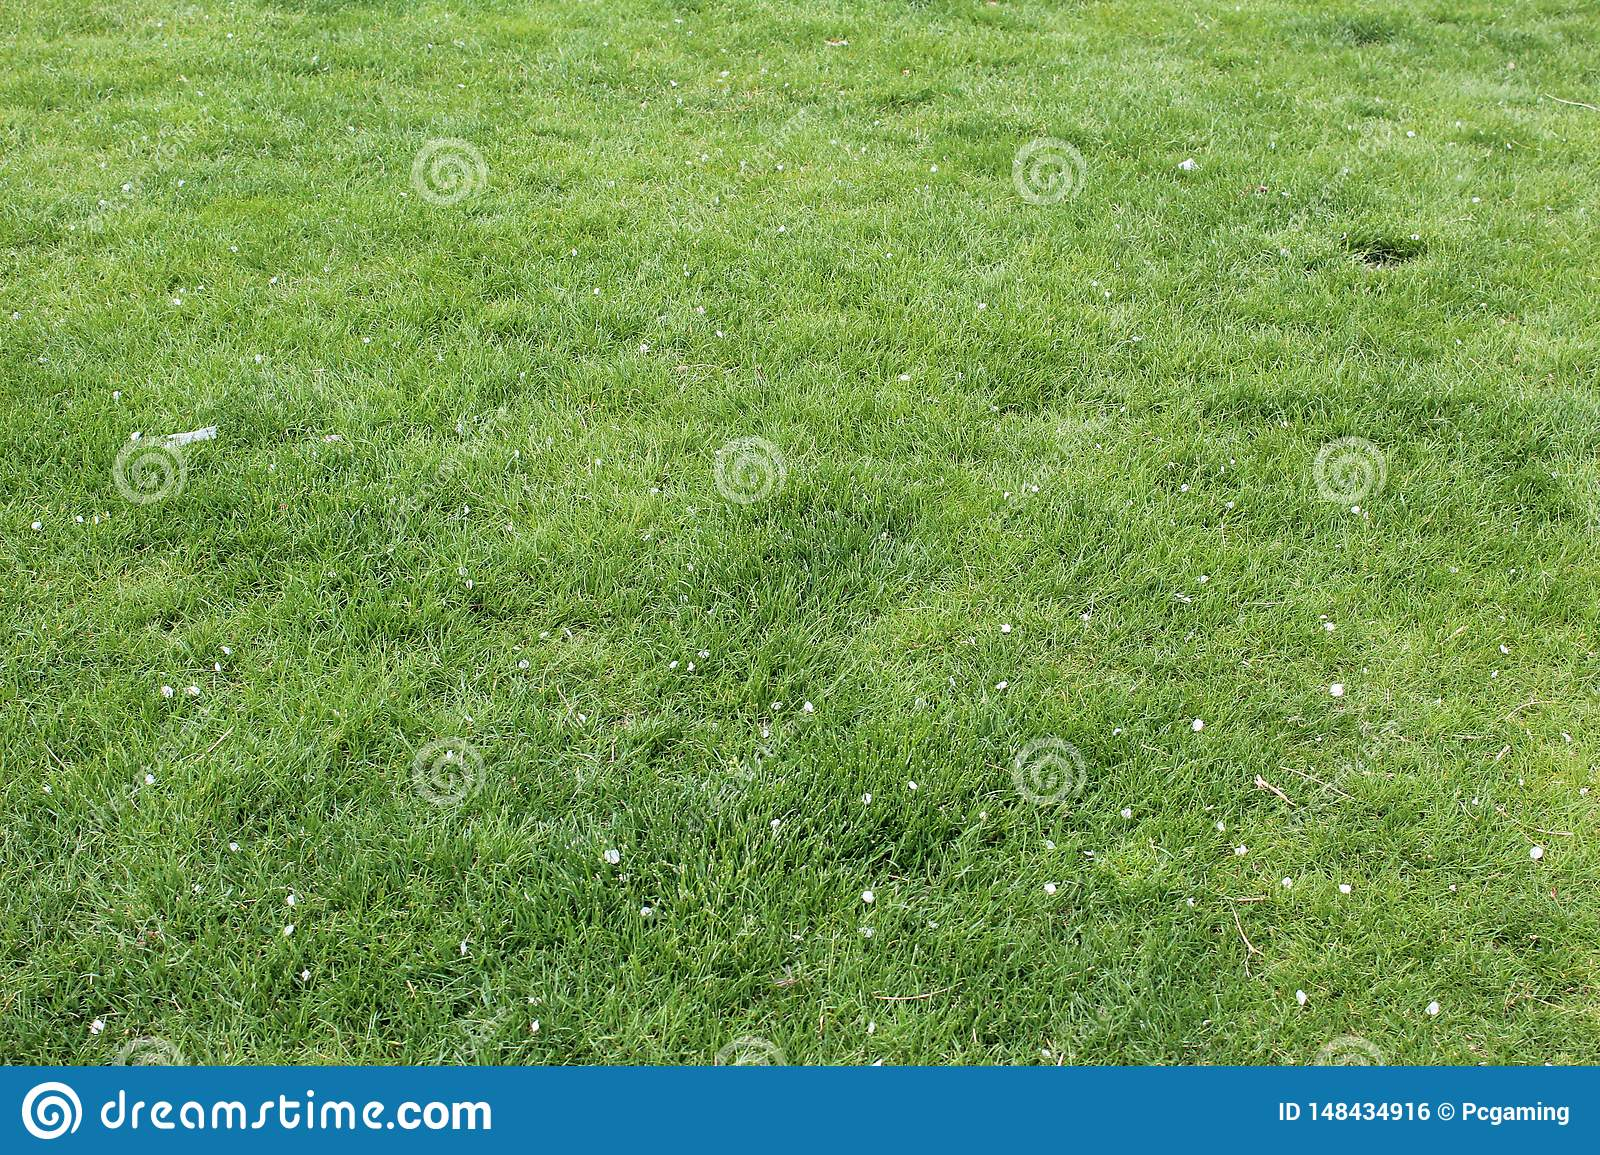 Grass greenish yellow